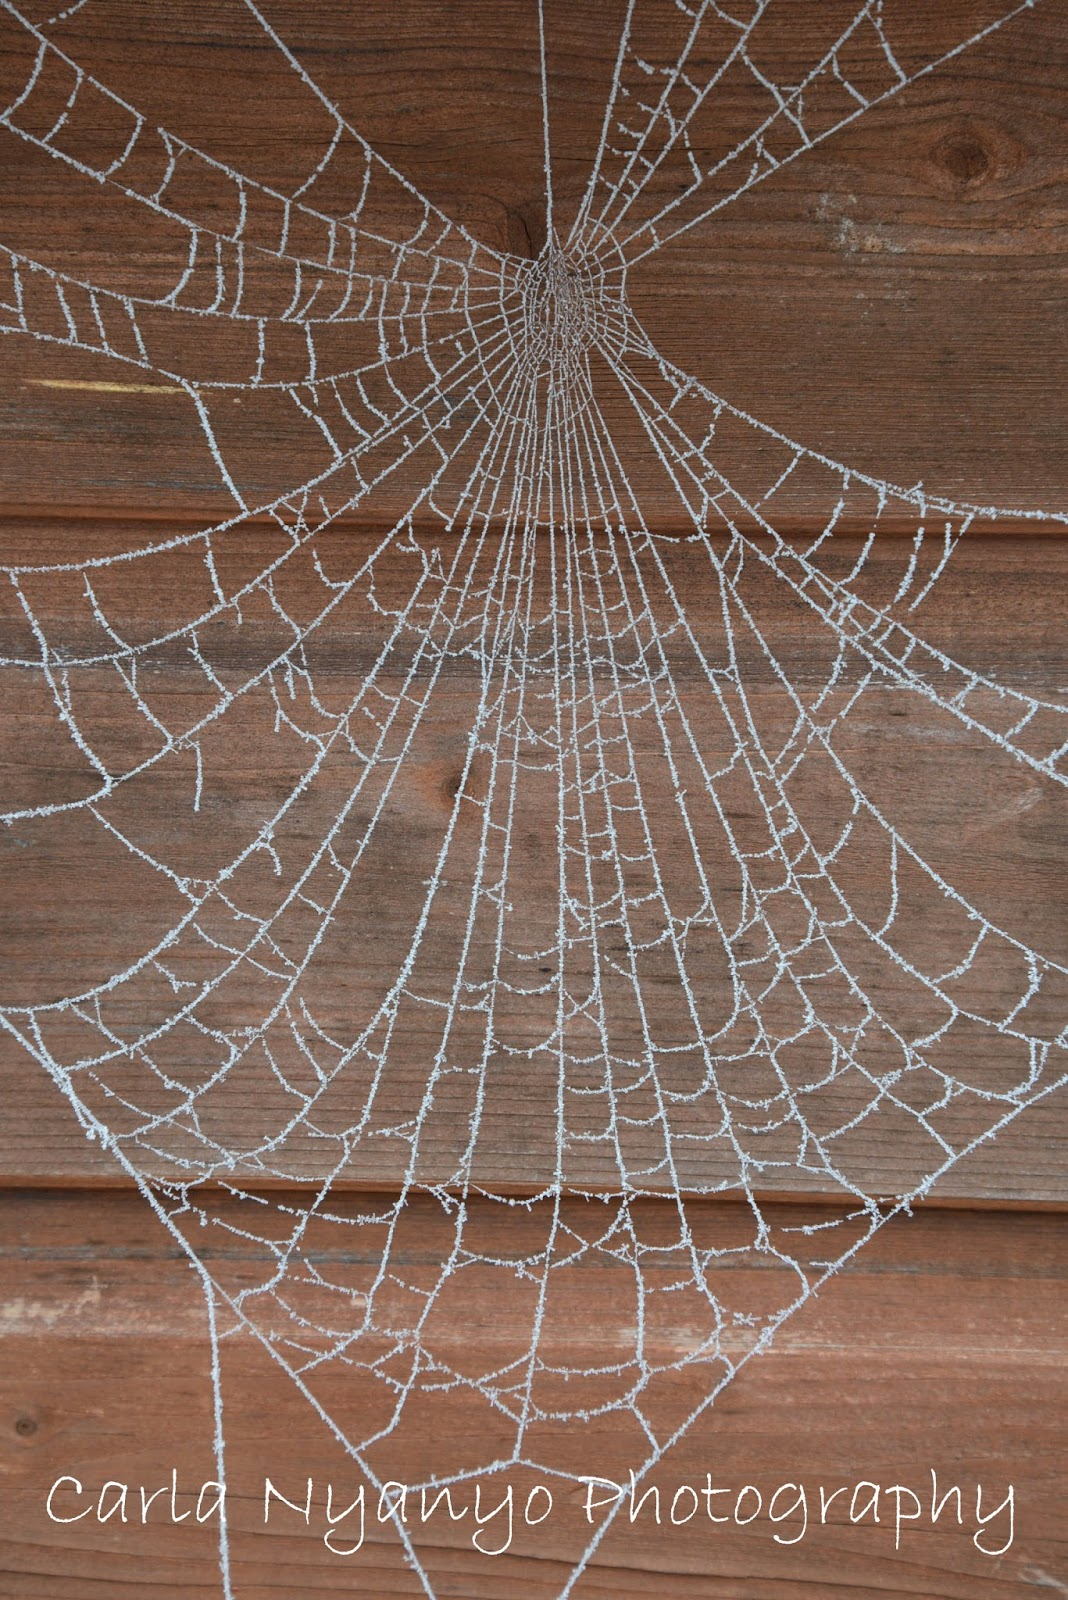 frosty spider web 1